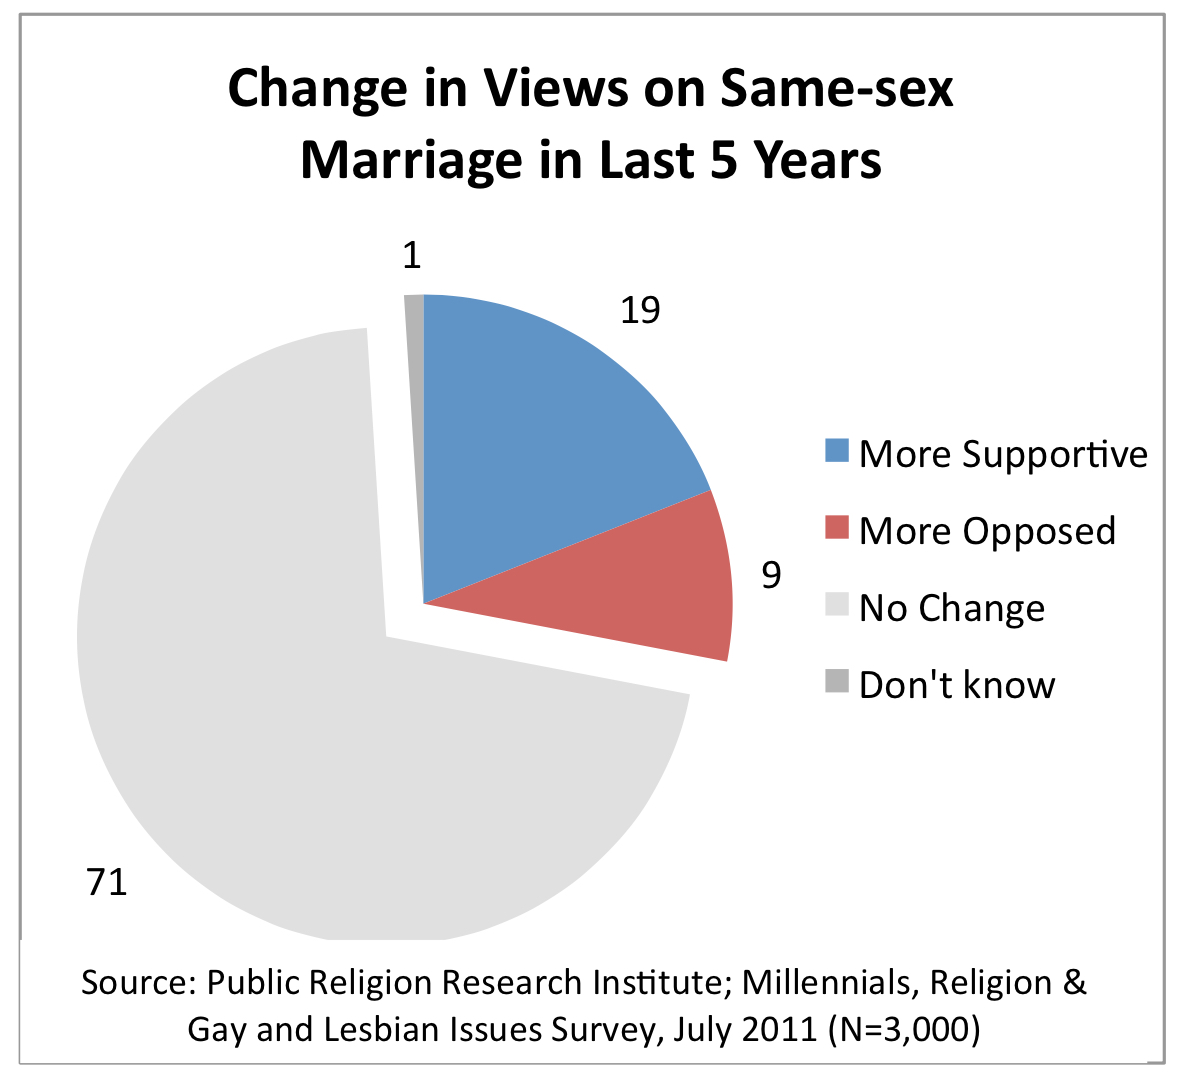 Majority of Young Catholics Believe Gays and Lesbians Should Be Accepted, Study